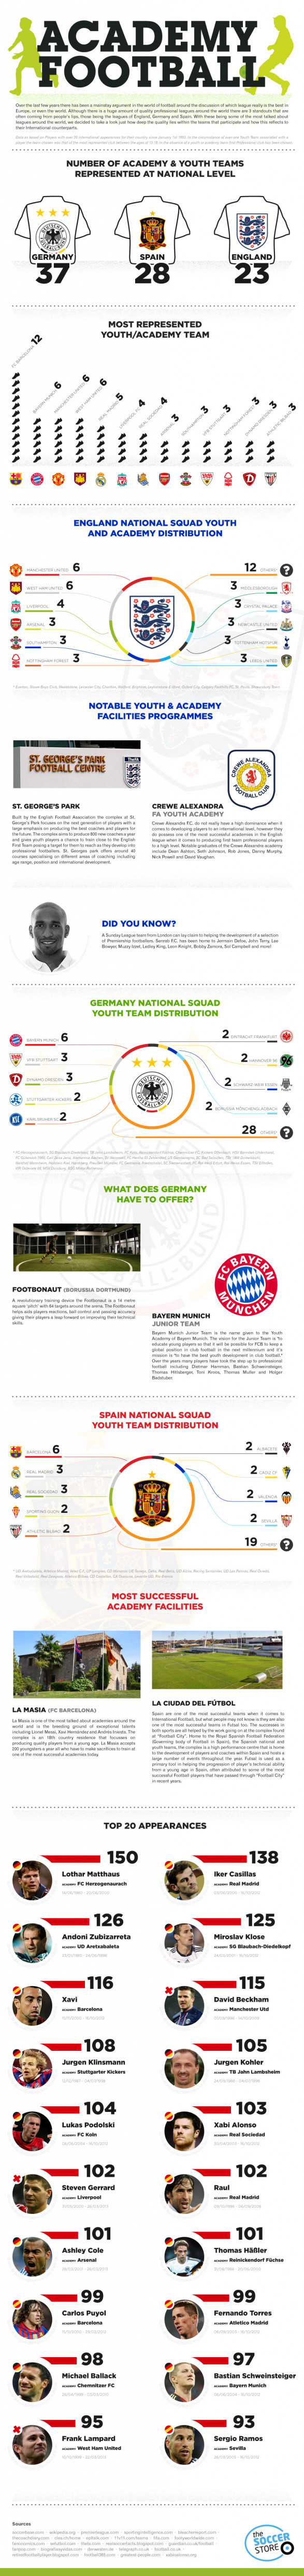 Academy Football in Europe